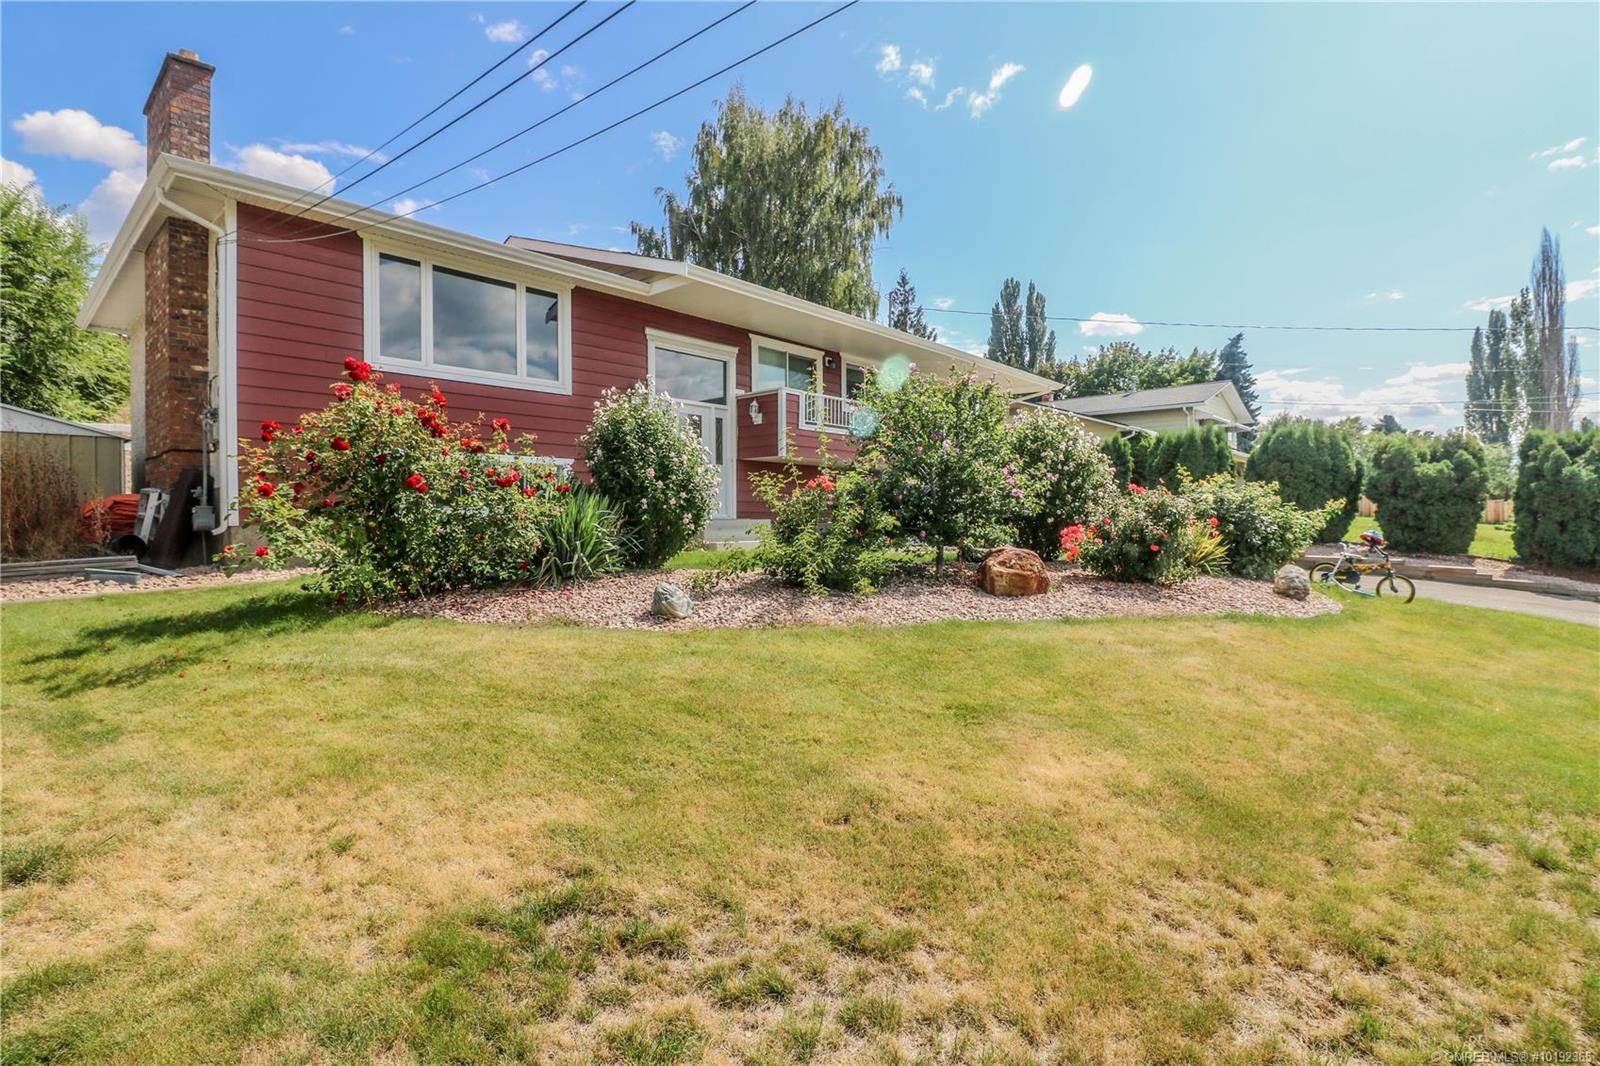 Removed: 1325 Morrison Road, Kelowna, BC - Removed on 2019-10-31 07:39:20